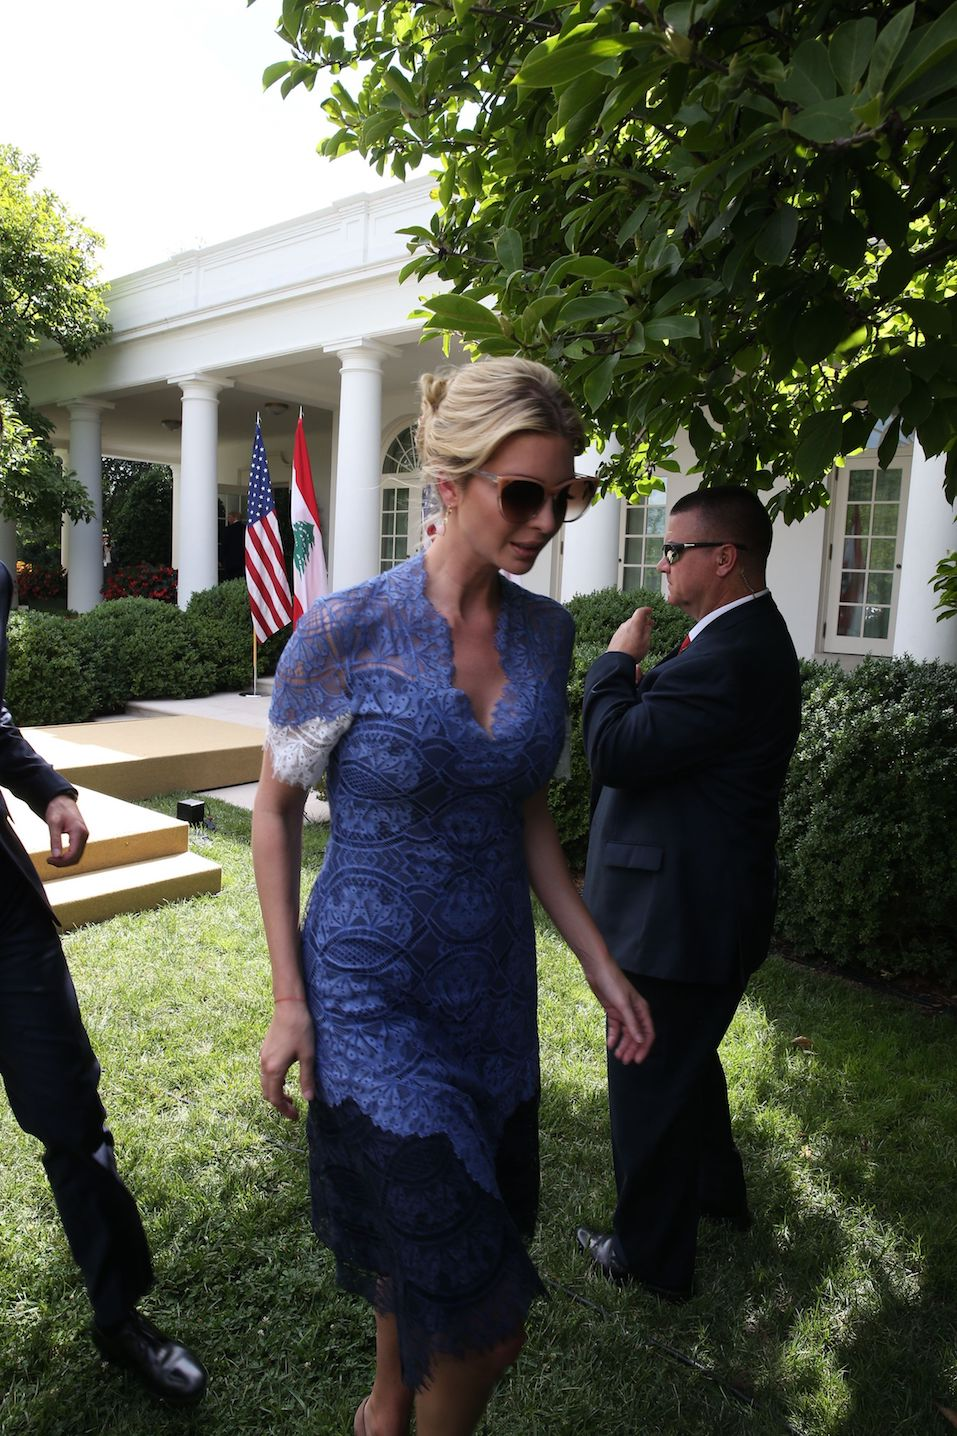 Ivanka Trump leaves after US President Donald Trump held a news conference with Prime Minister of Lebanon Saad Hariri